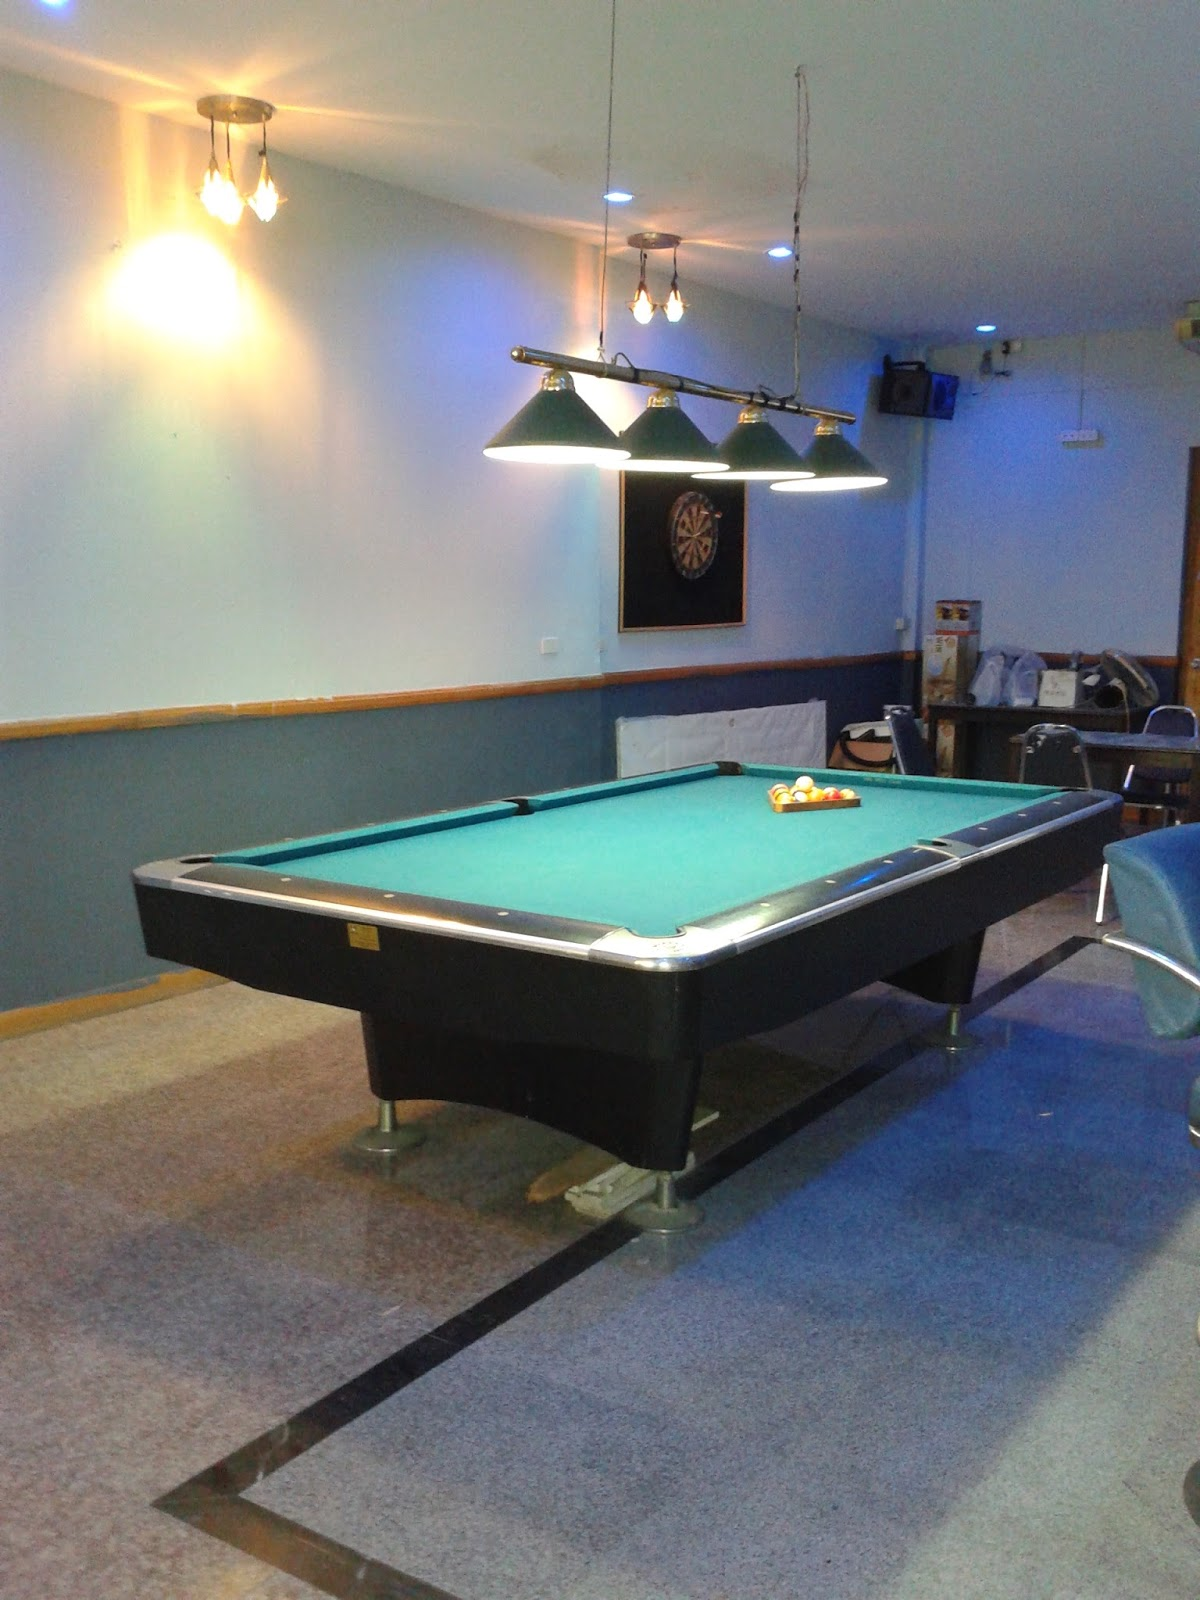 Key Bar And Guest House Jomtien With All Sports Live On TV And Pool - Pool table key